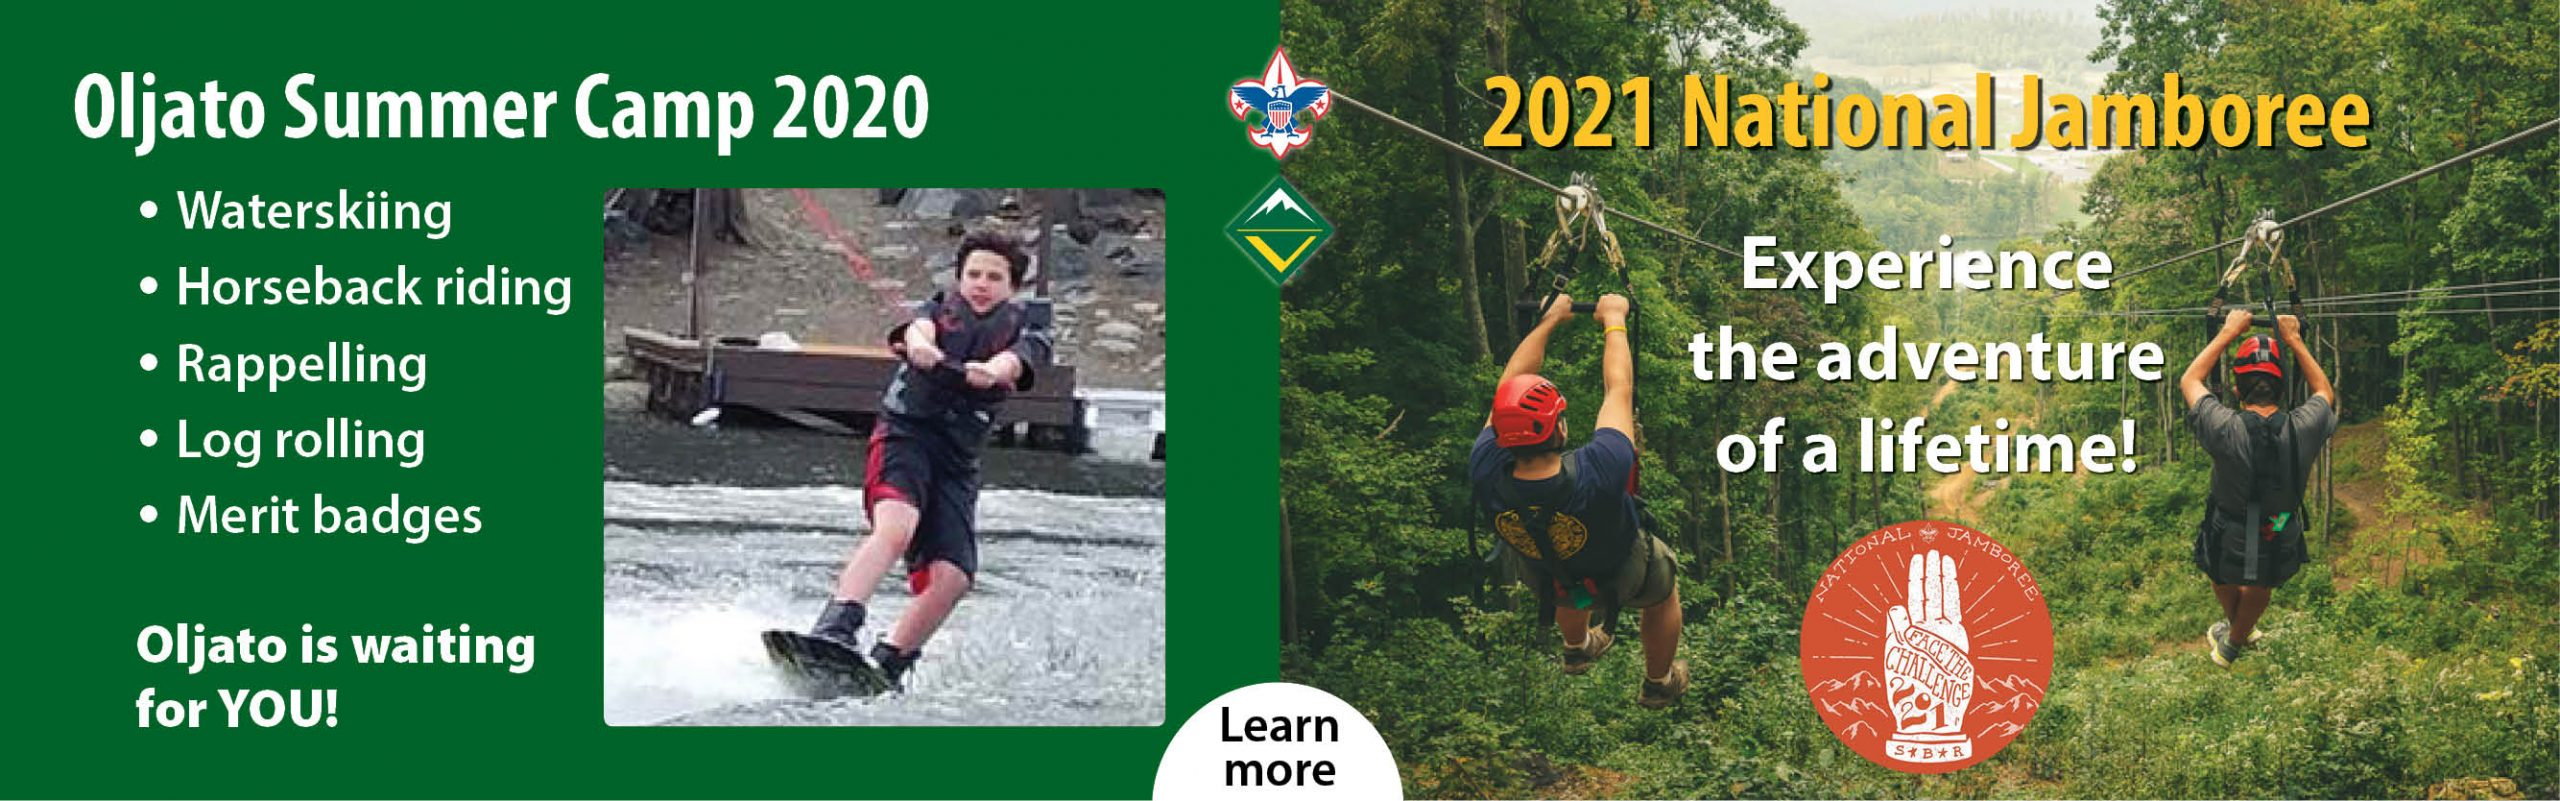 Banner for 2020 Oljato Summer Camp and 2021 National Jamboree